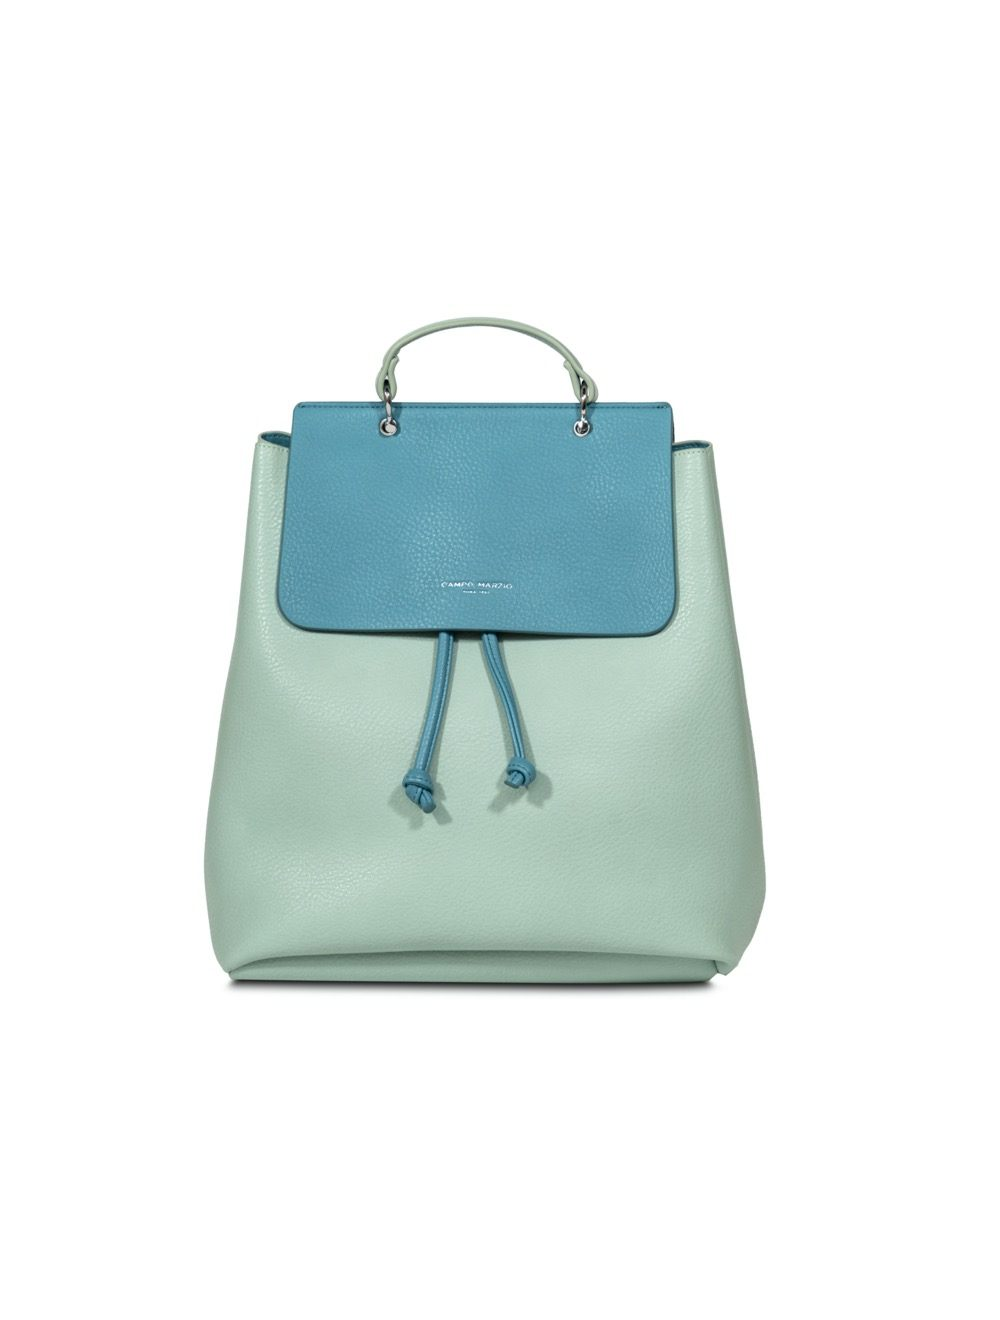 Fannie Backpack Handbag - Mint